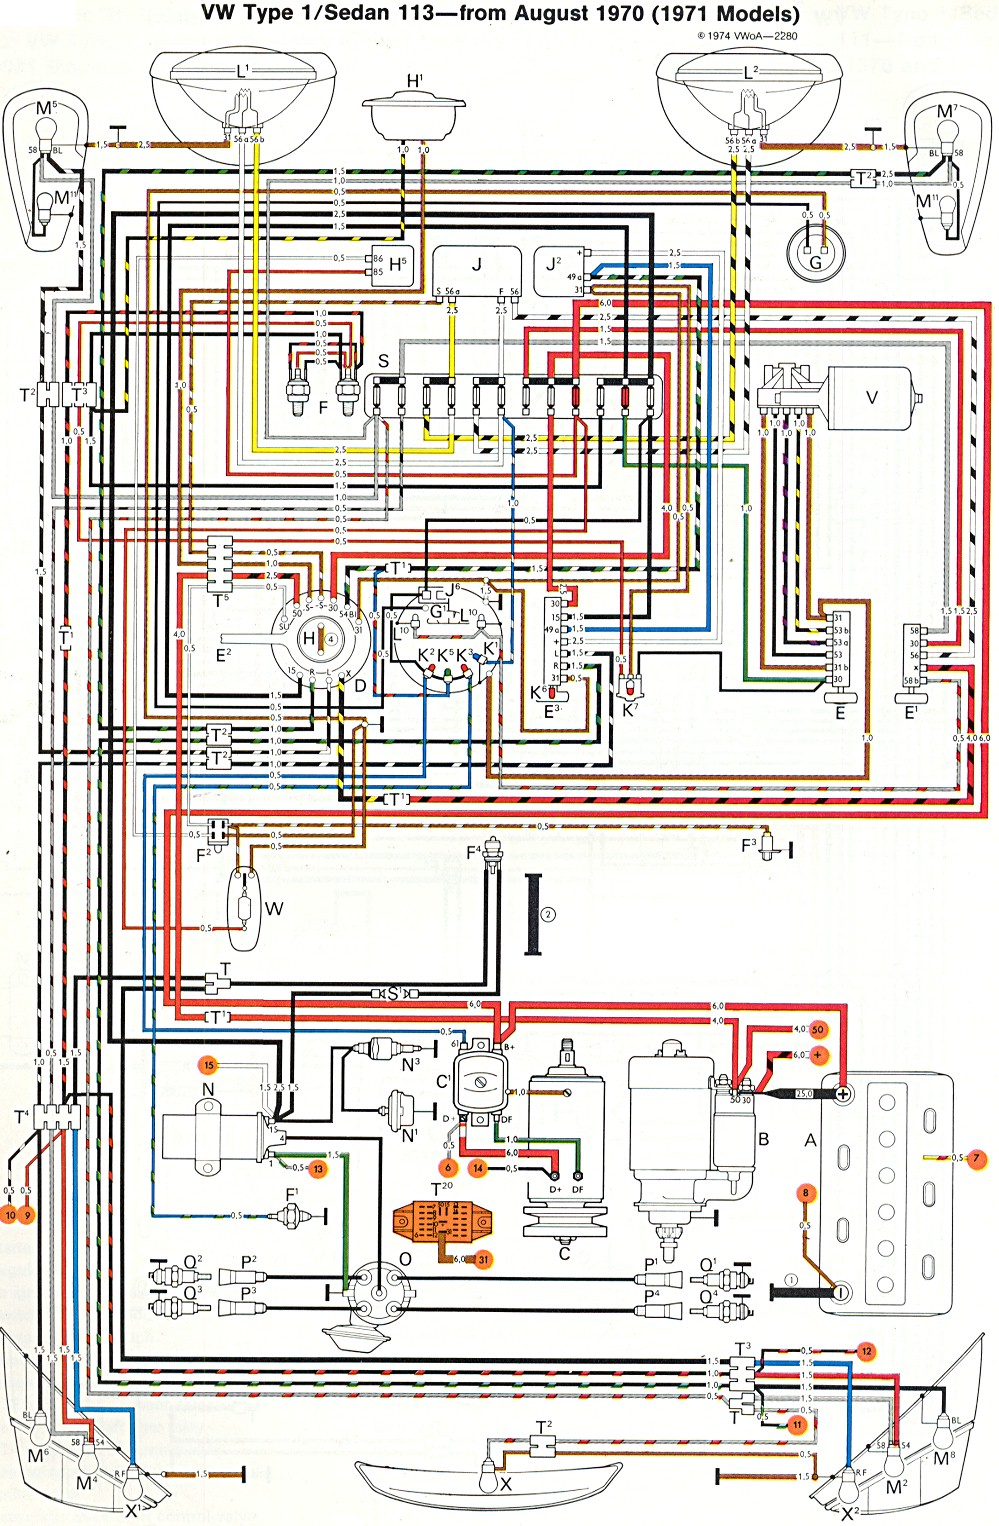 bug_super_71 1971 super beetle wiring diagram thegoldenbug com vw wiring harness at crackthecode.co